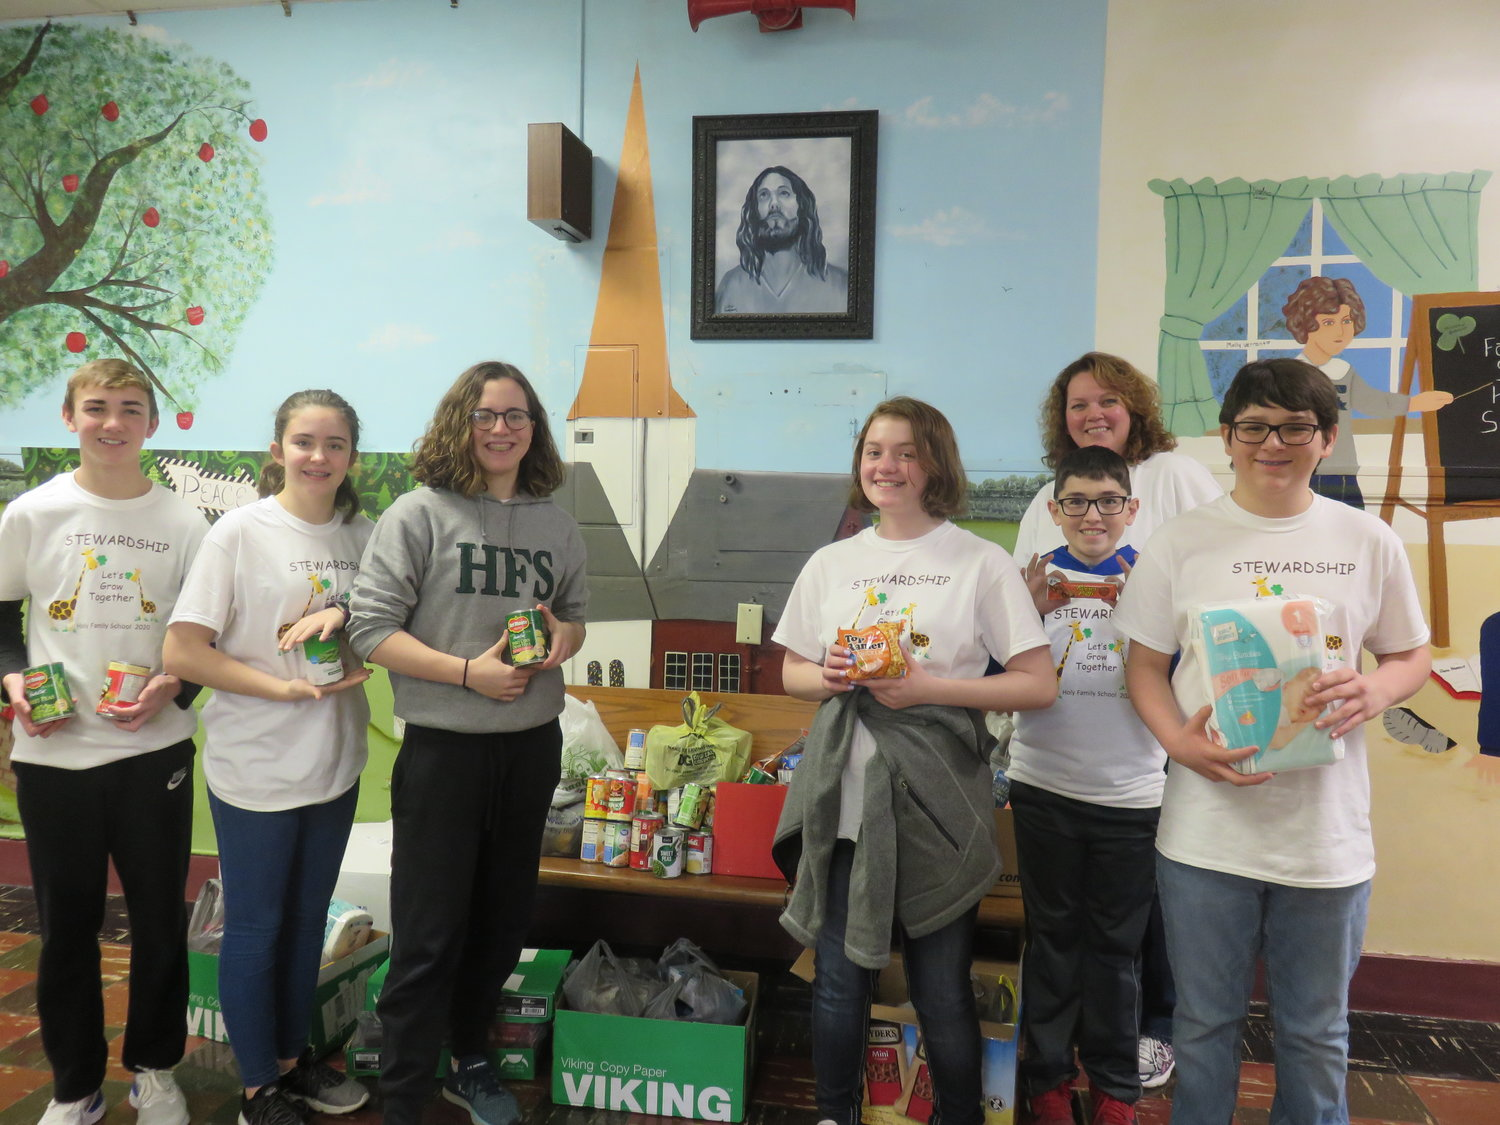 Eighth-graders at Holy Family School in Hannibal gather up the food and personal-care items collected for Holy Family parish's Good Neighbor Project for people in need.